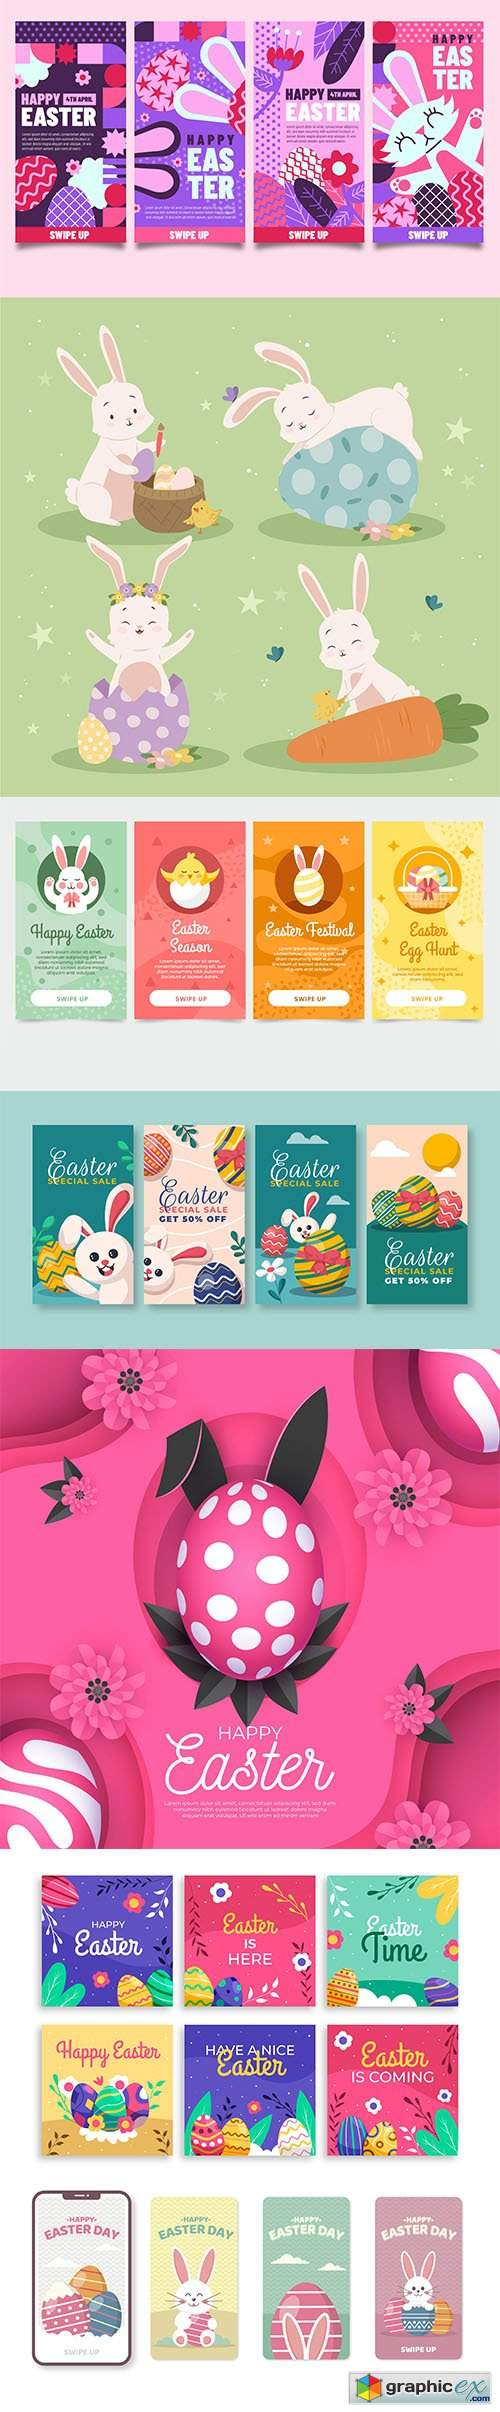 Hand-drawn cute easter illustrations and banner vol 2